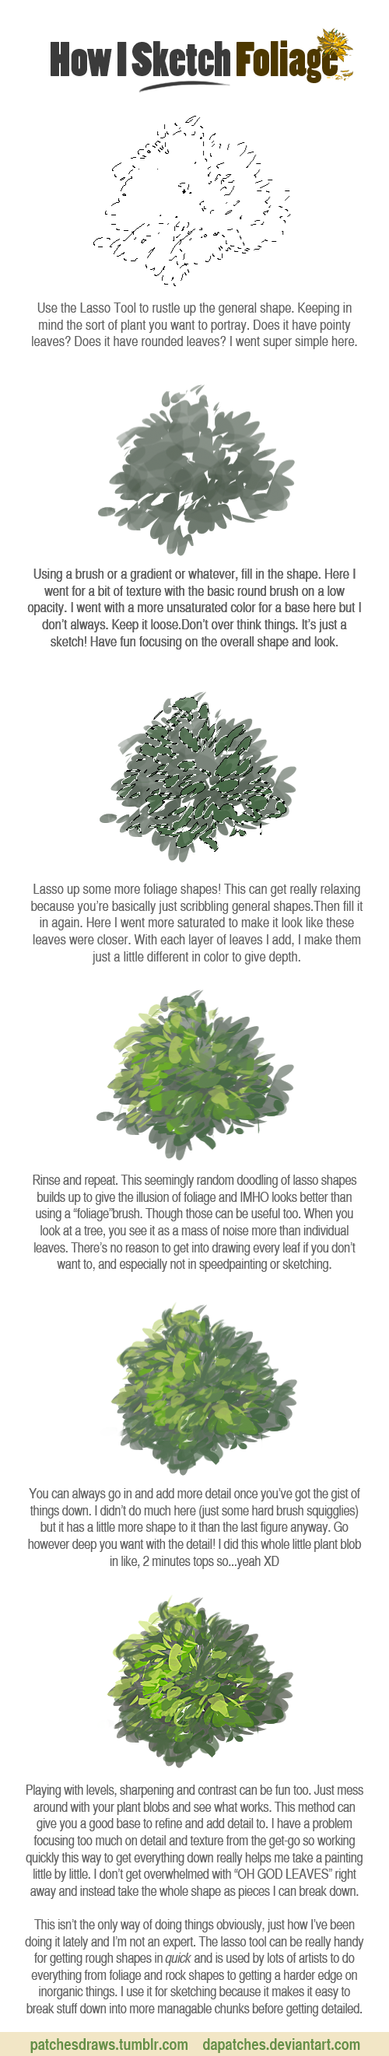 Foliage Sketching with the Lasso Tool by daPatches